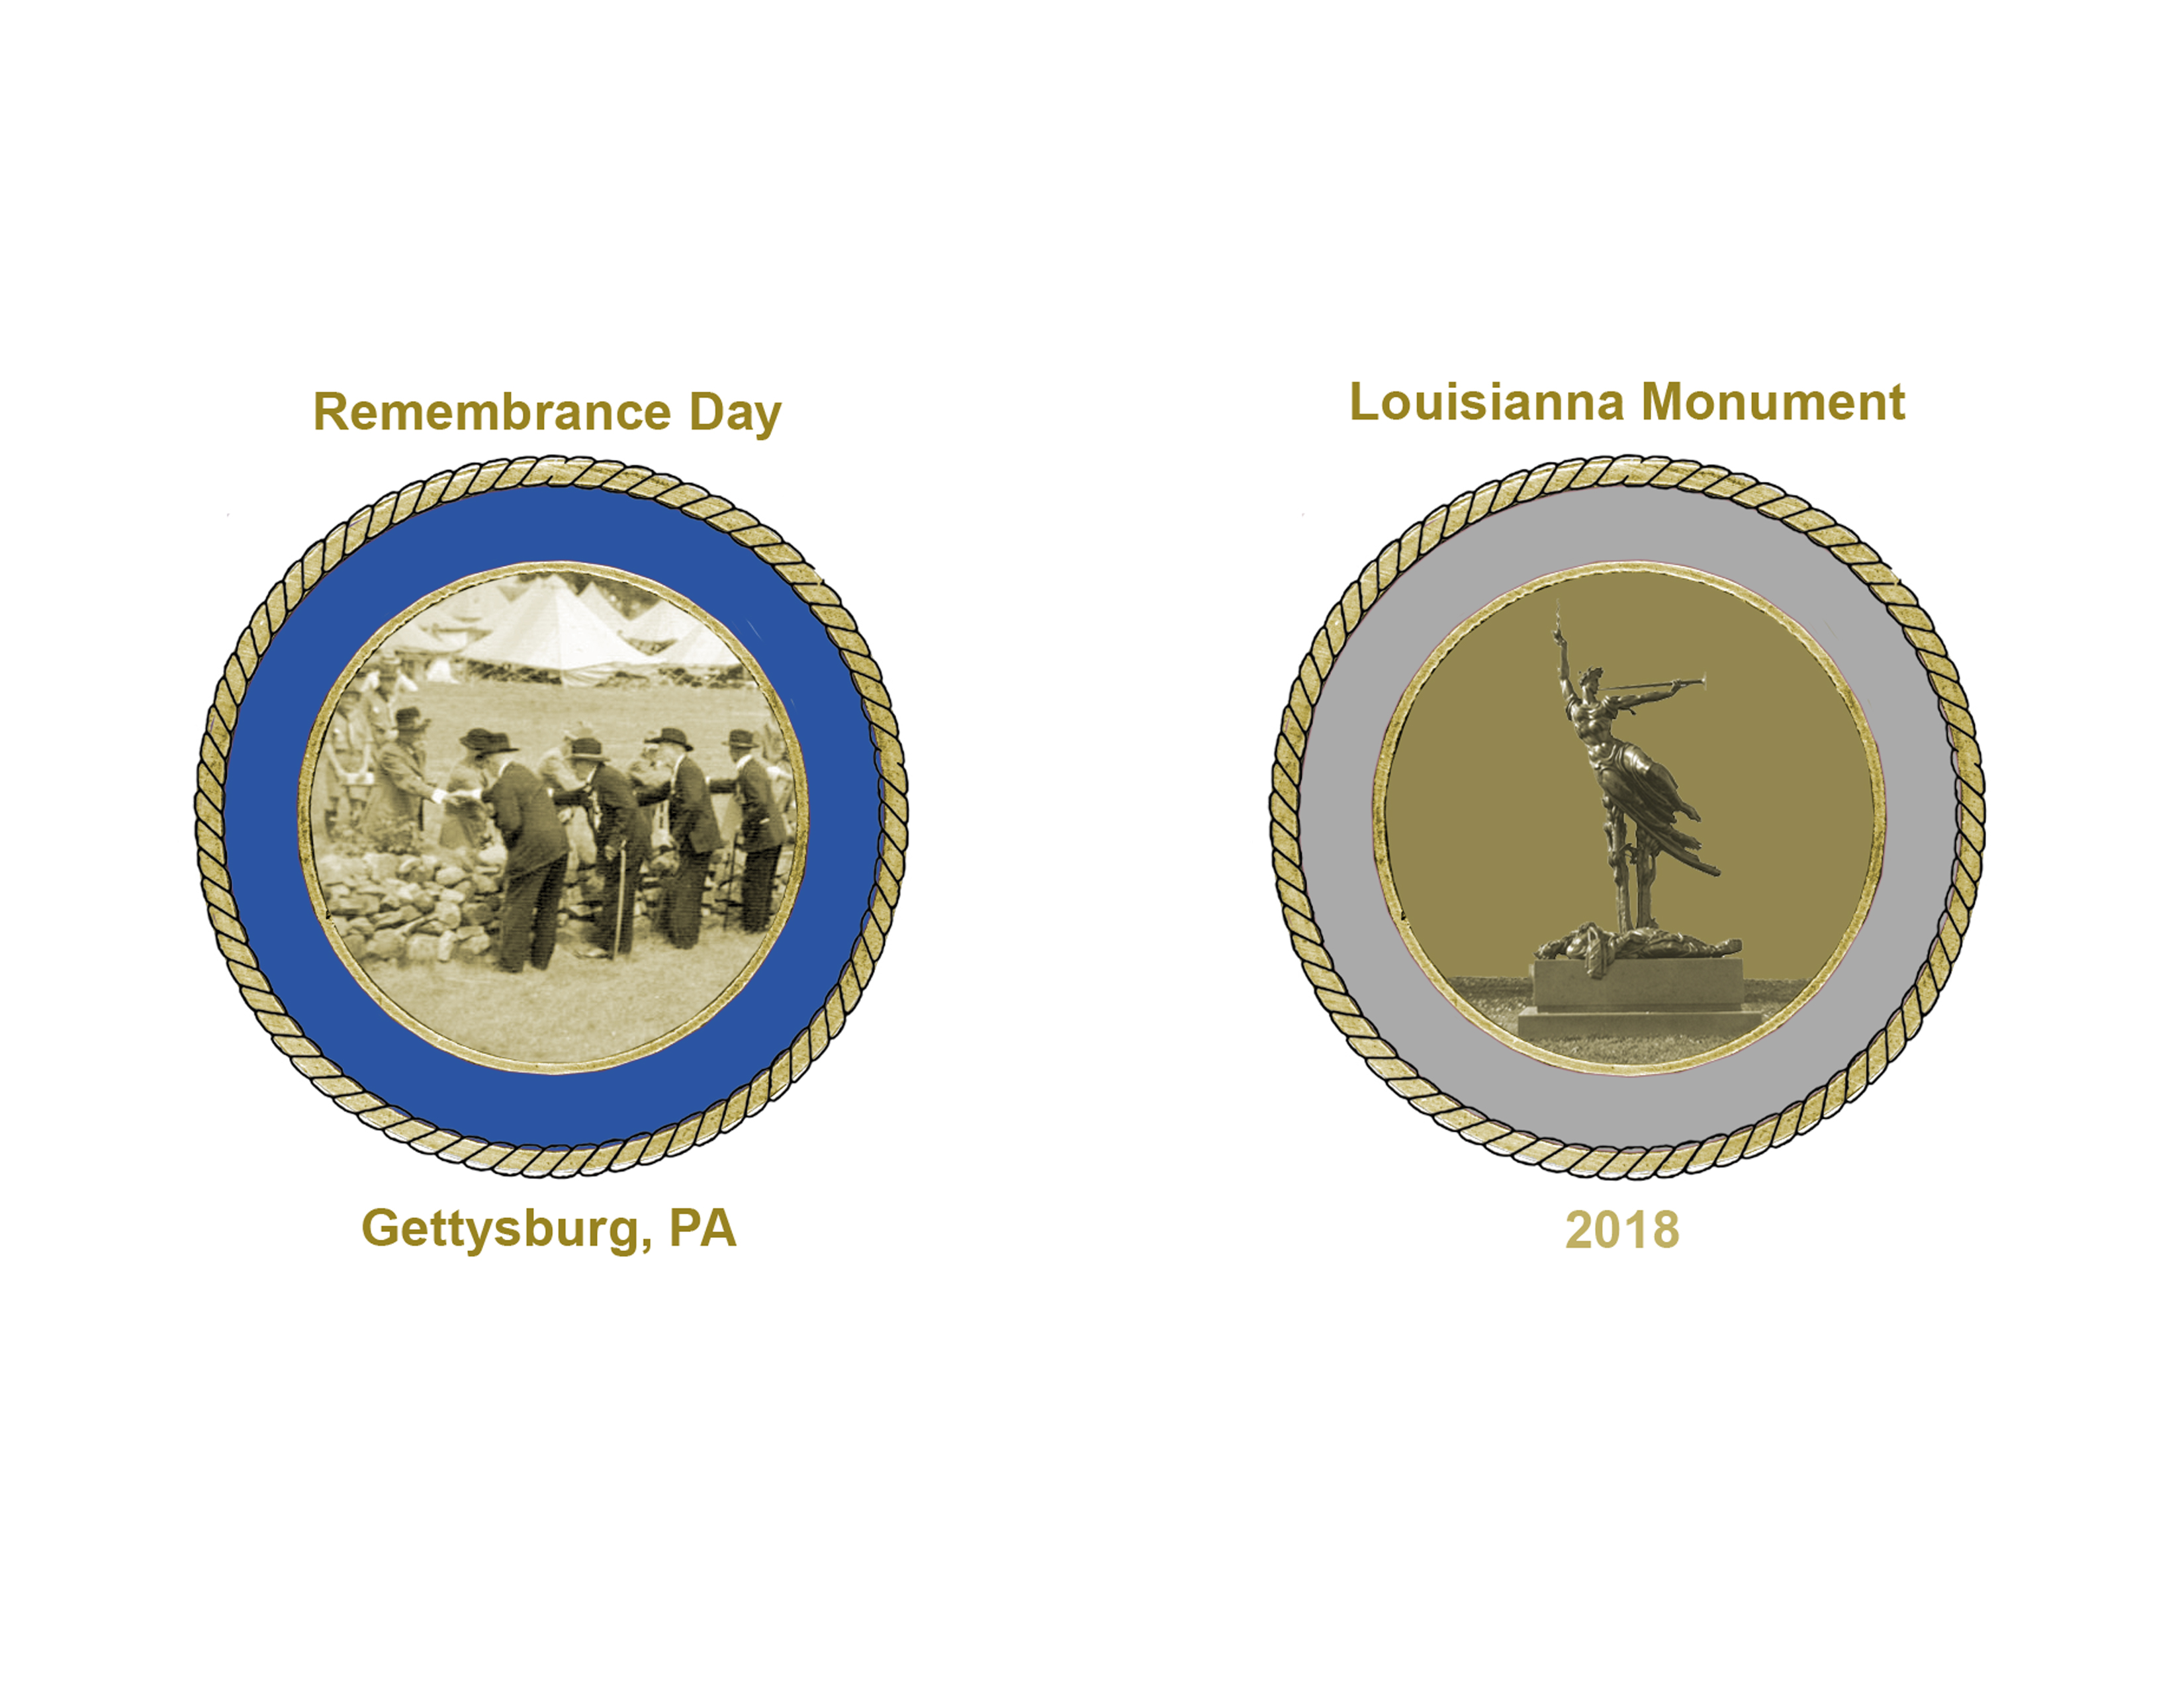 2018 Remembrance Day Challenge Coin